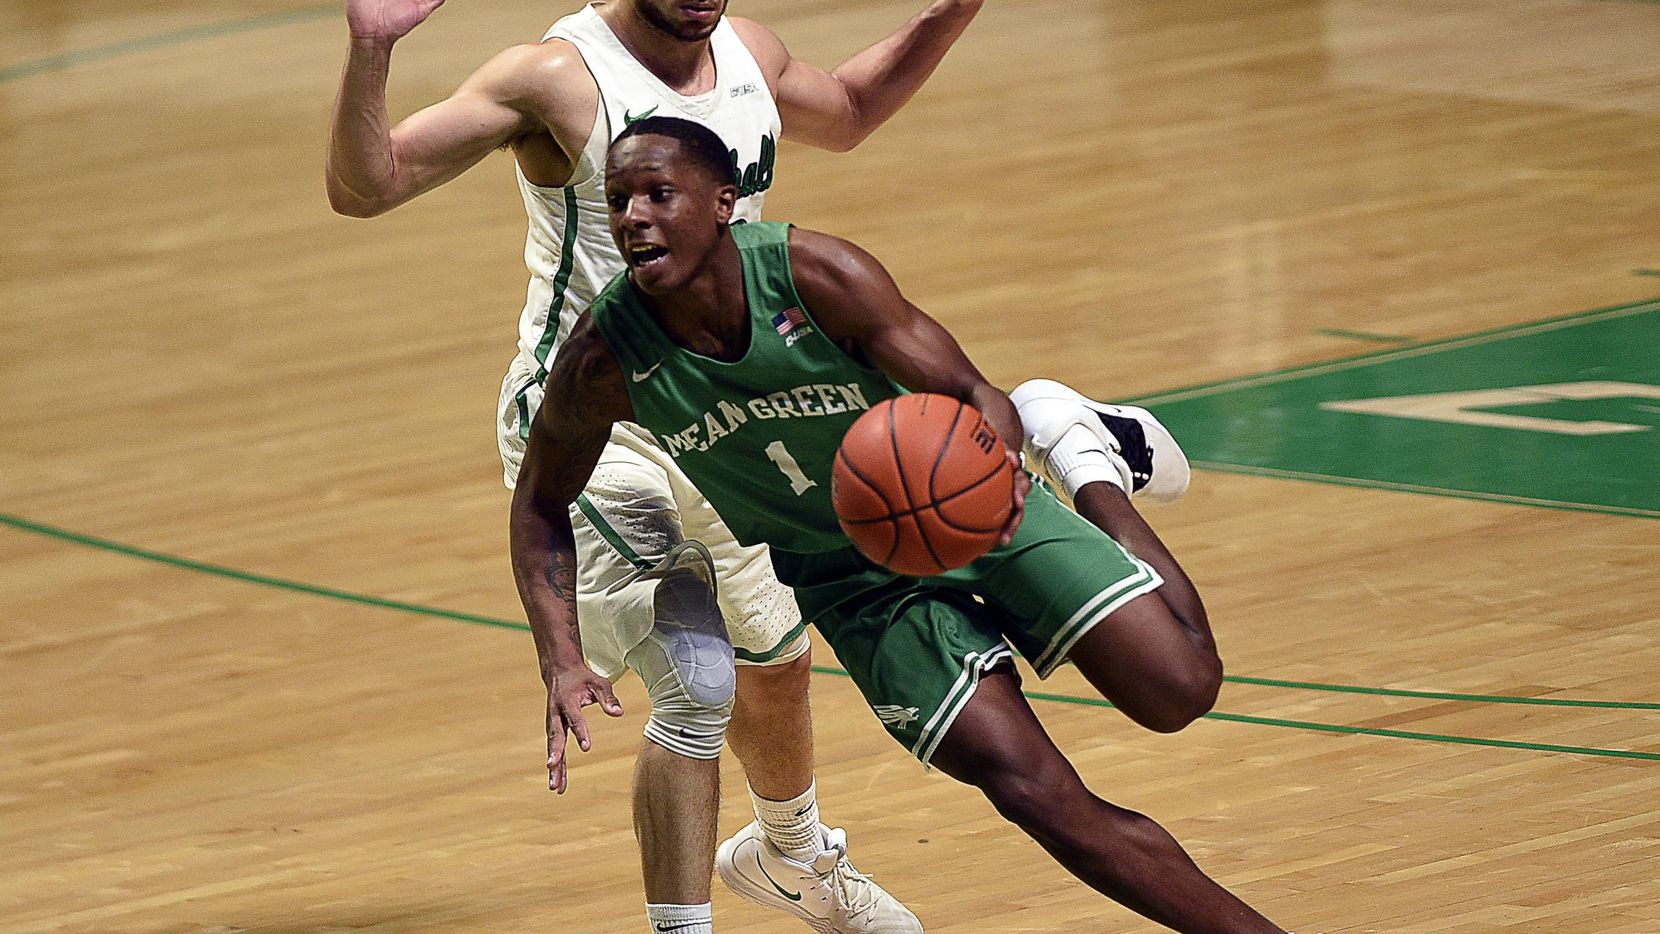 North Texas guard Umoja Gibson (1) brings the ball up the court as Marshall guard Jarrod West defends during Marshall's 85-82 win over the Mean Green at the Super Pit in Denton.